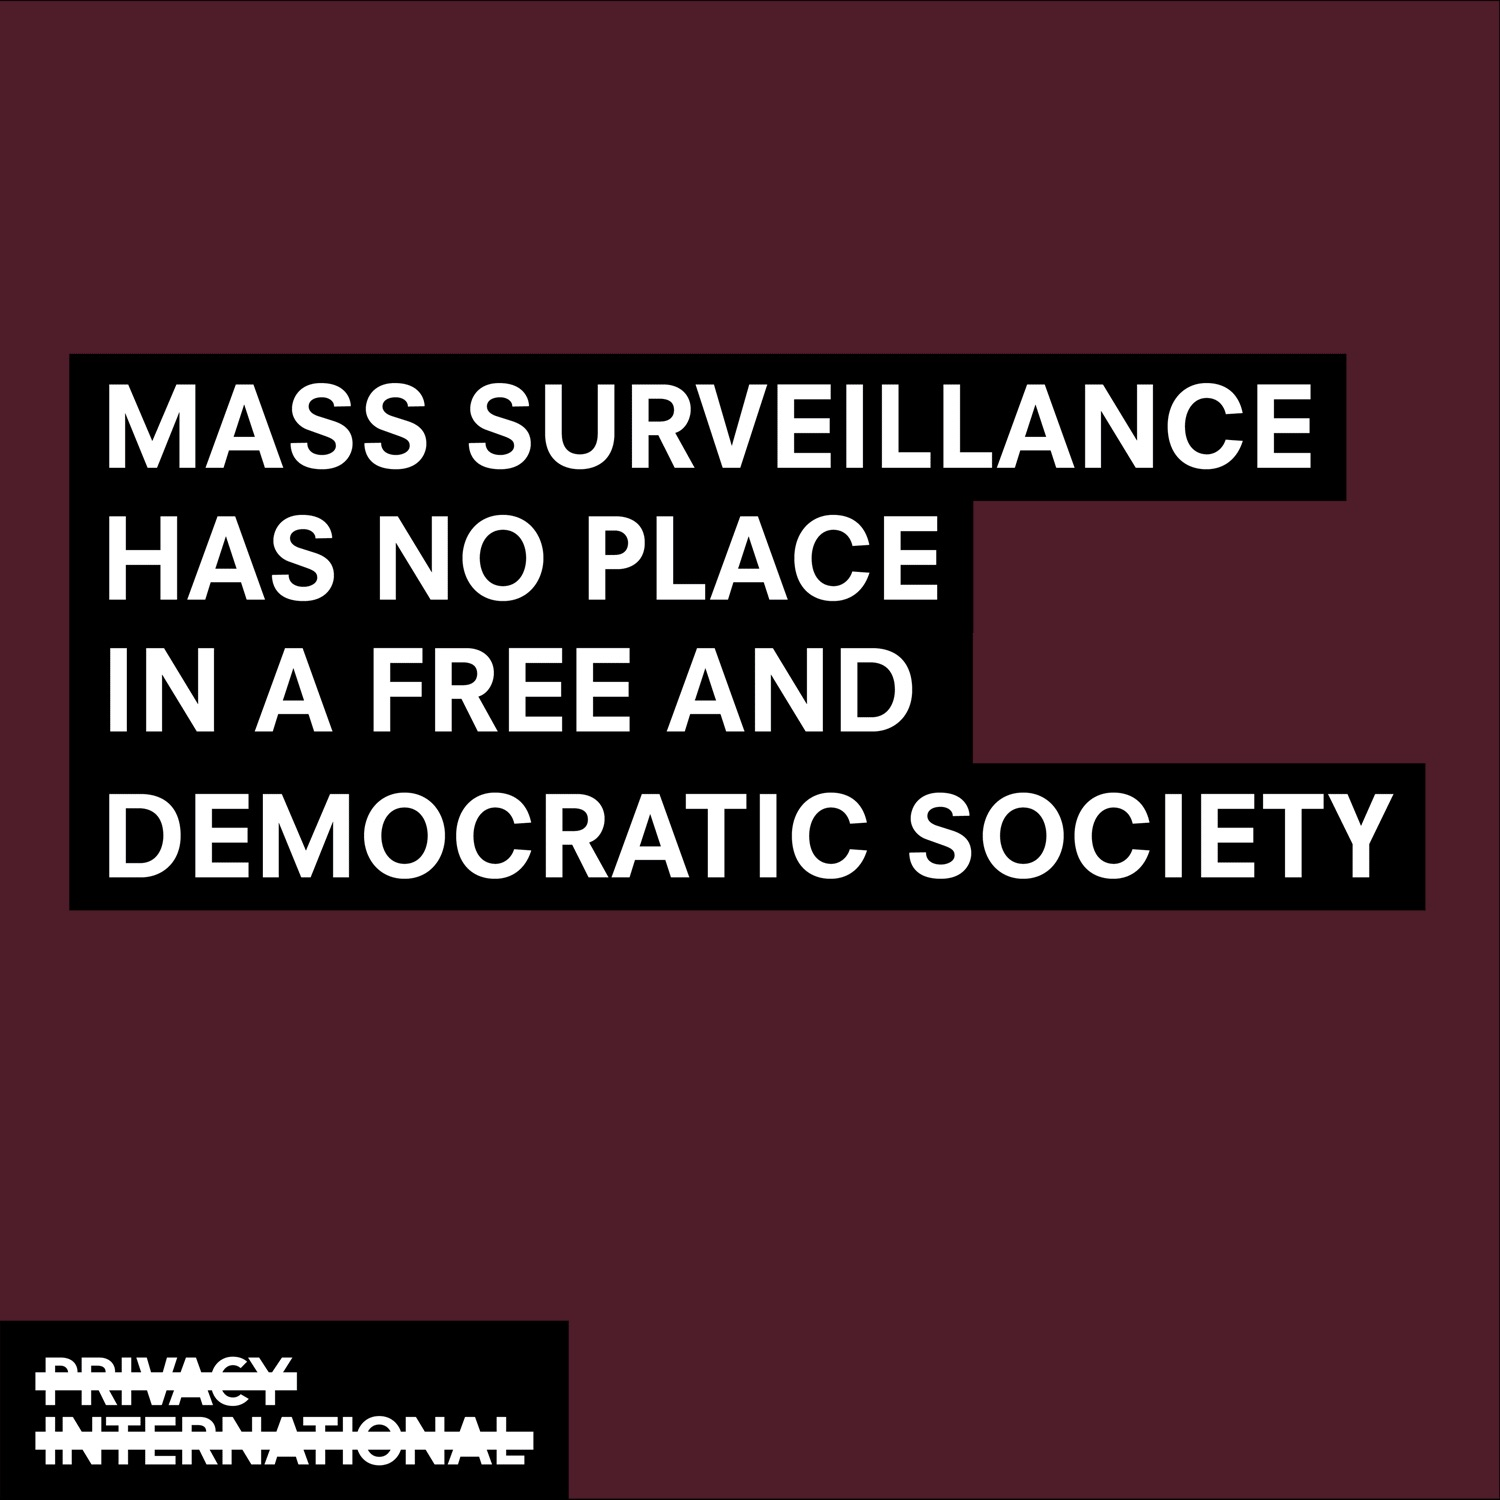 Mass surveillance has no place in a free and democratic society